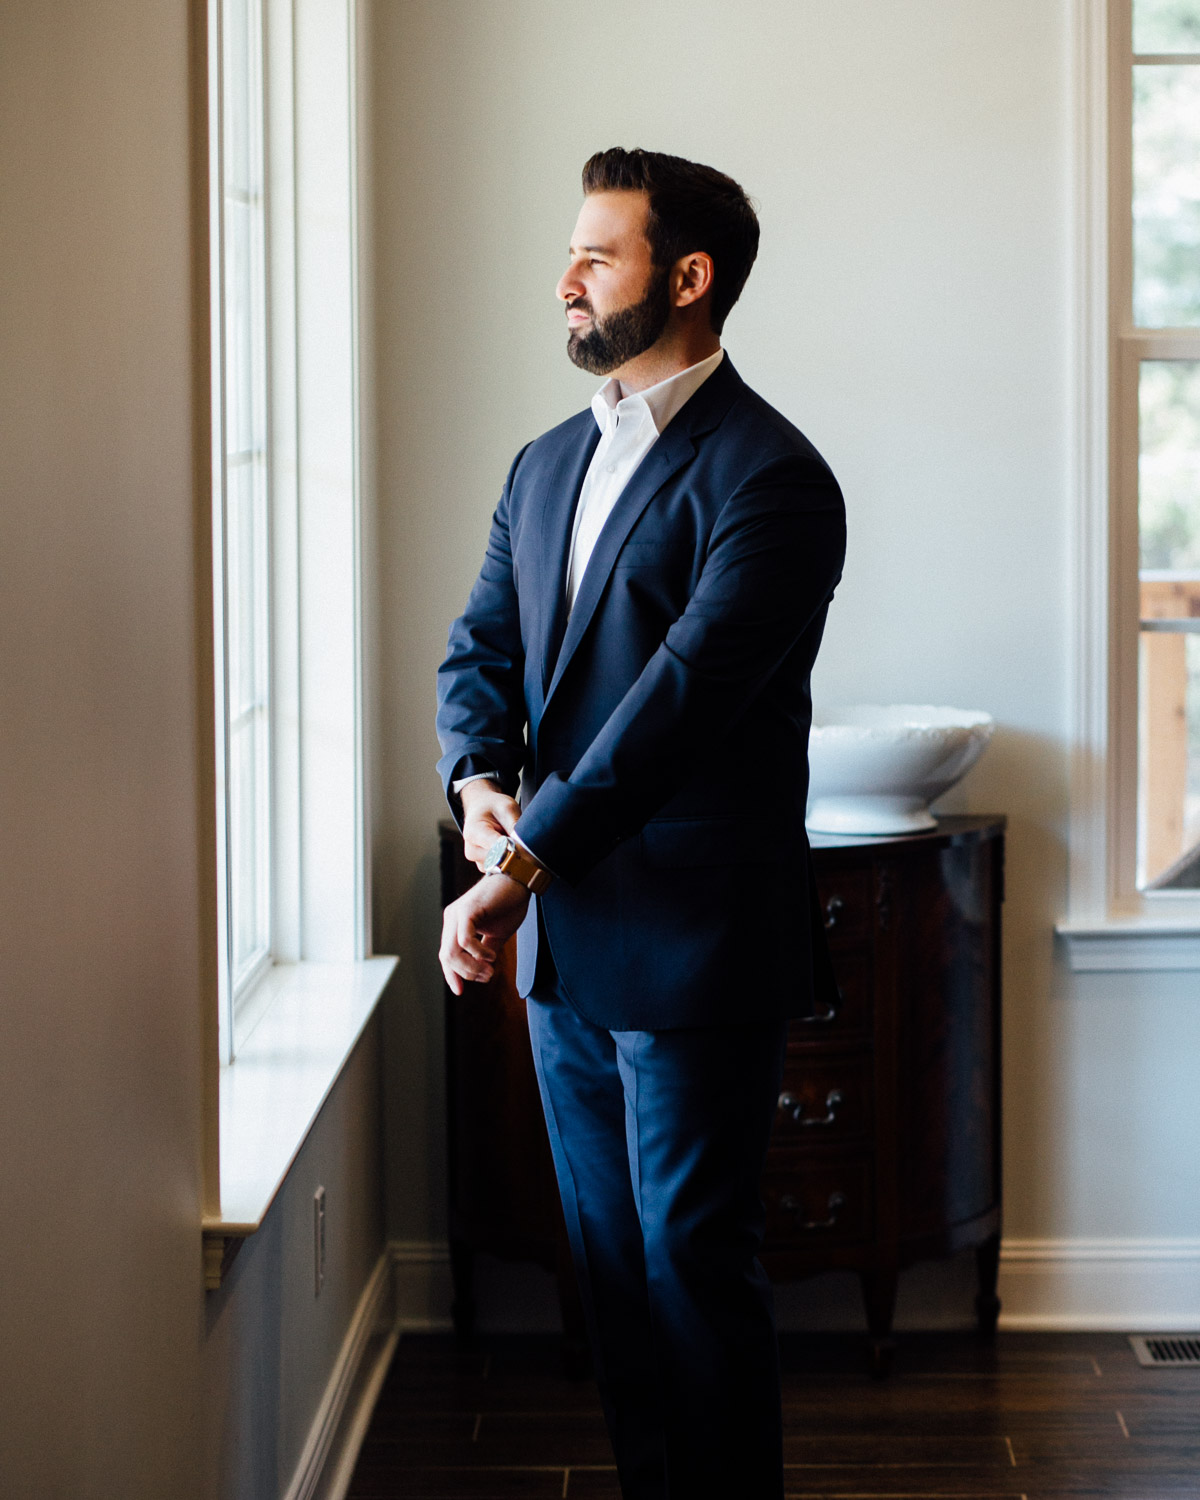 groom-waiting-for-bride Becky and Alex | Green Door Gourmet - Fall Nashville Wedding